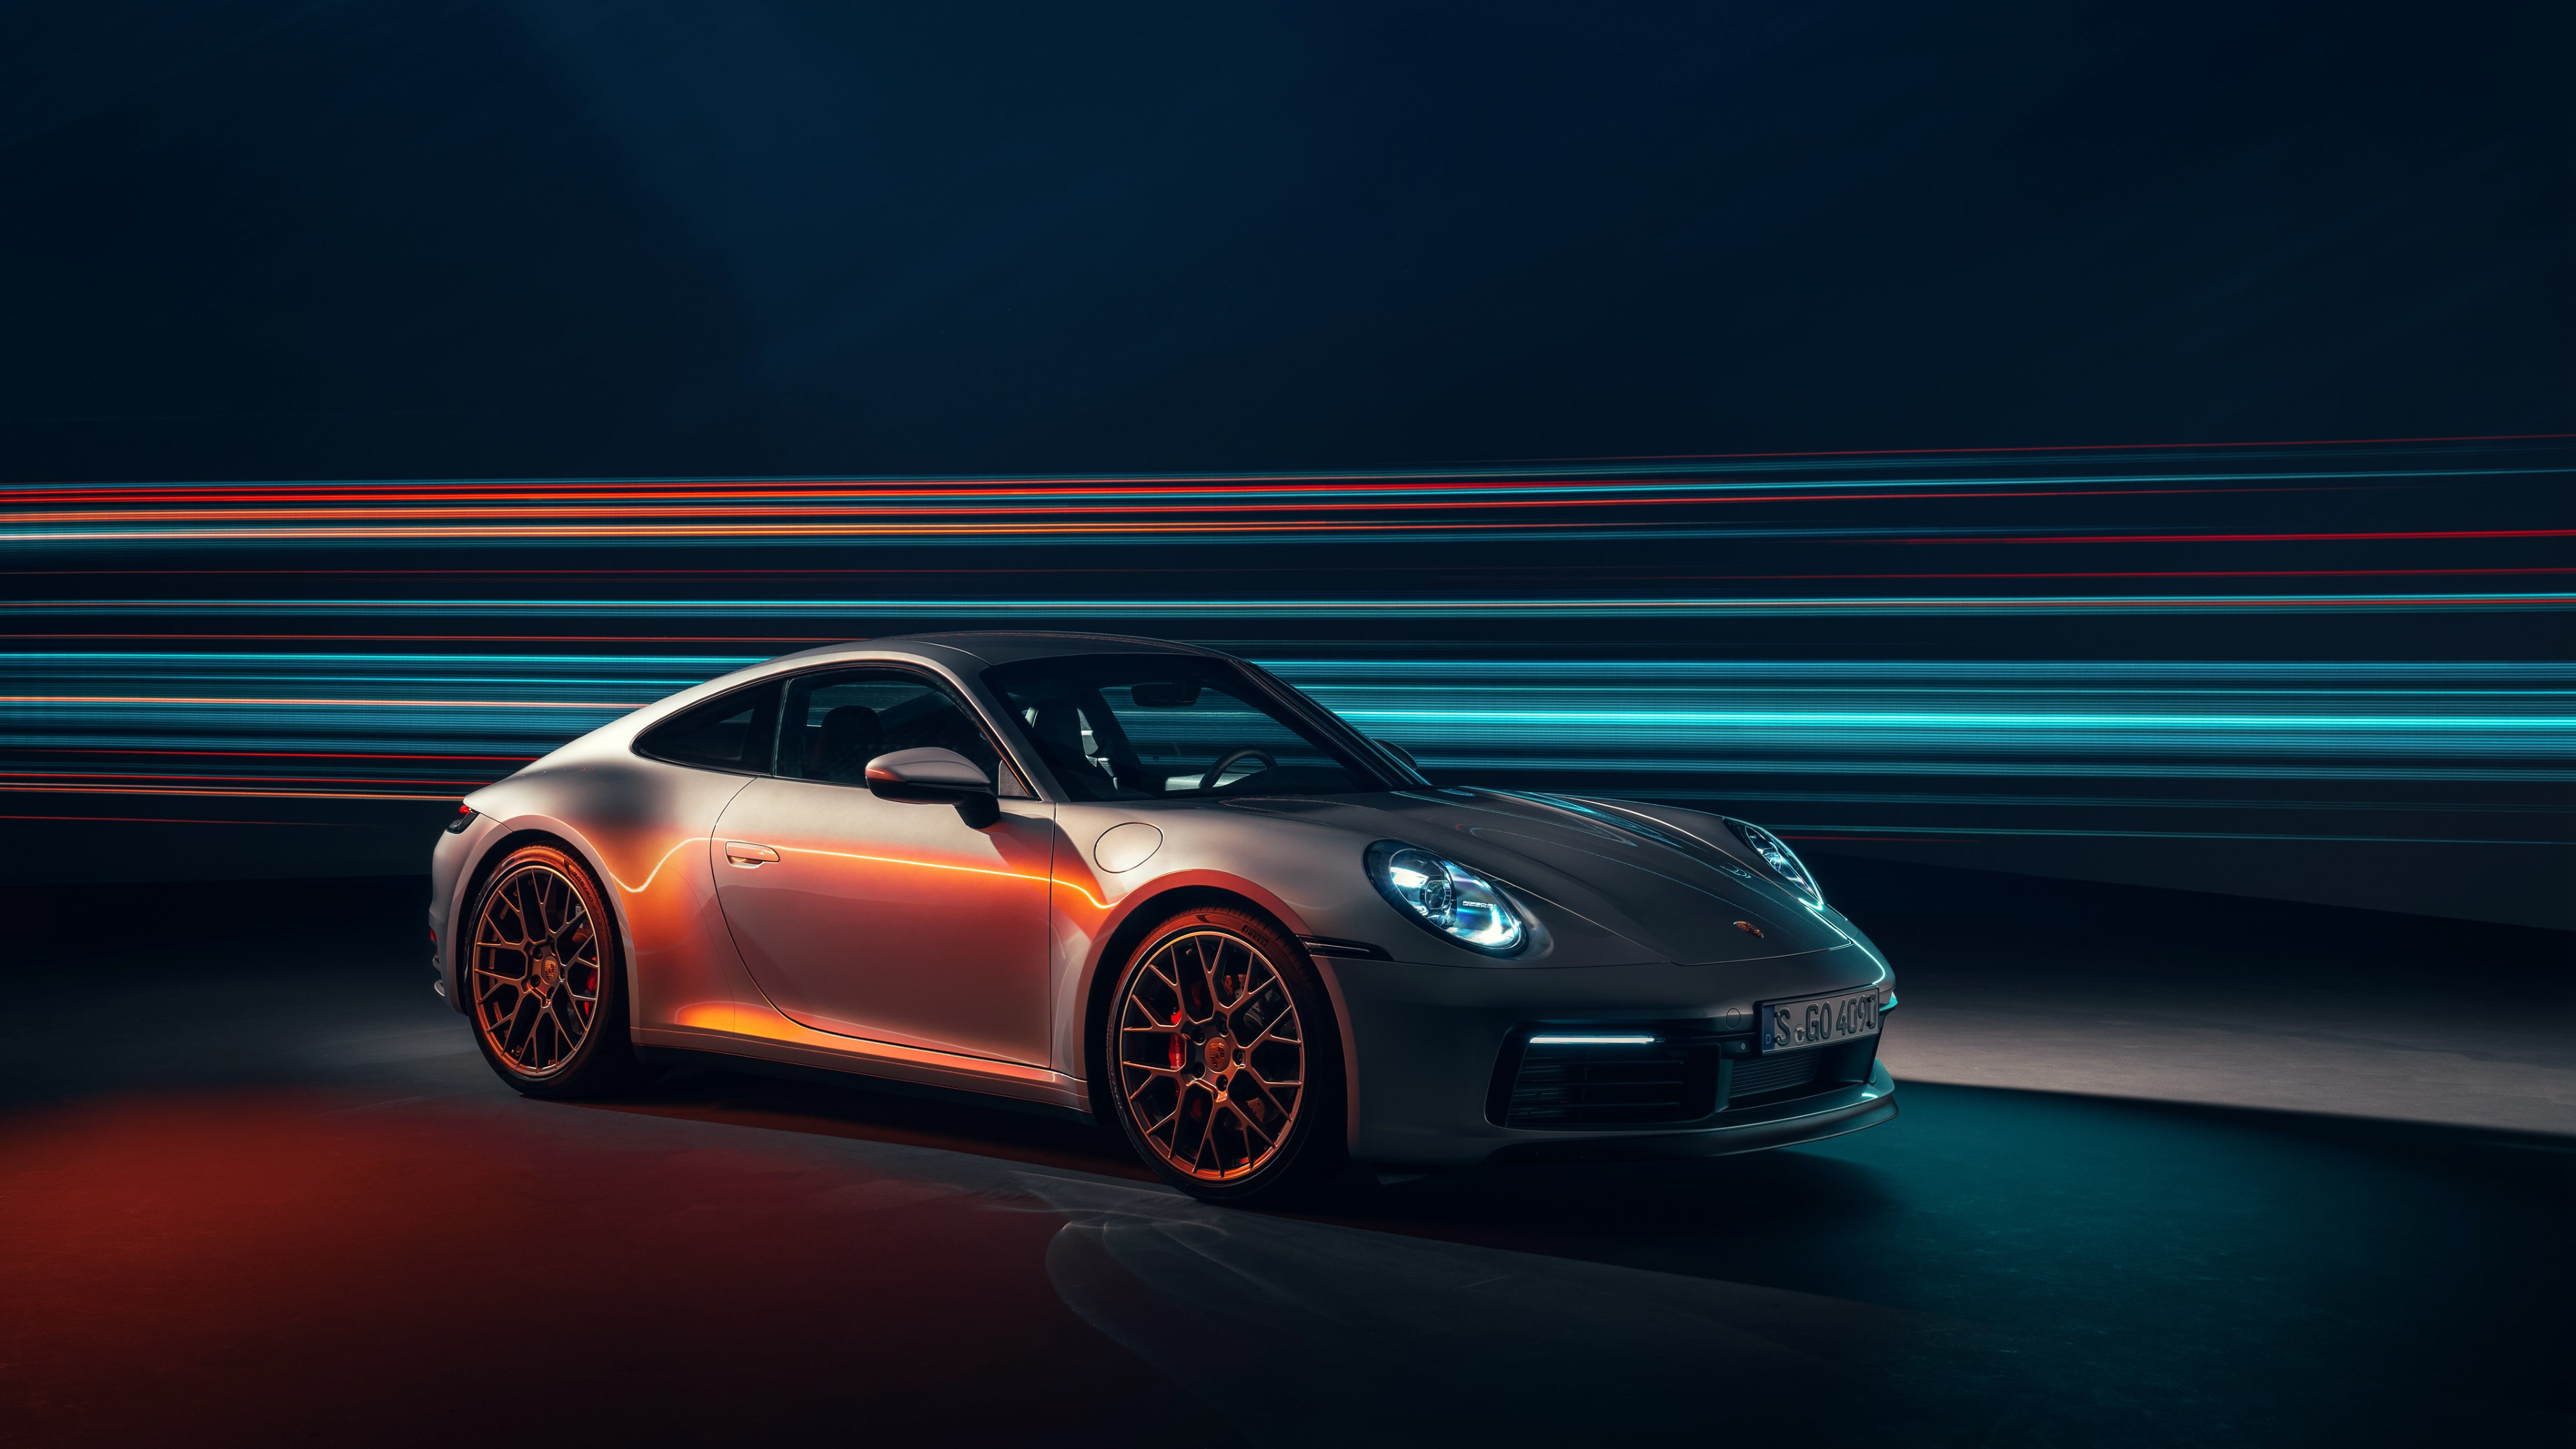 Porsche 911 Carrera 4S | 3840x2160 wallpaper